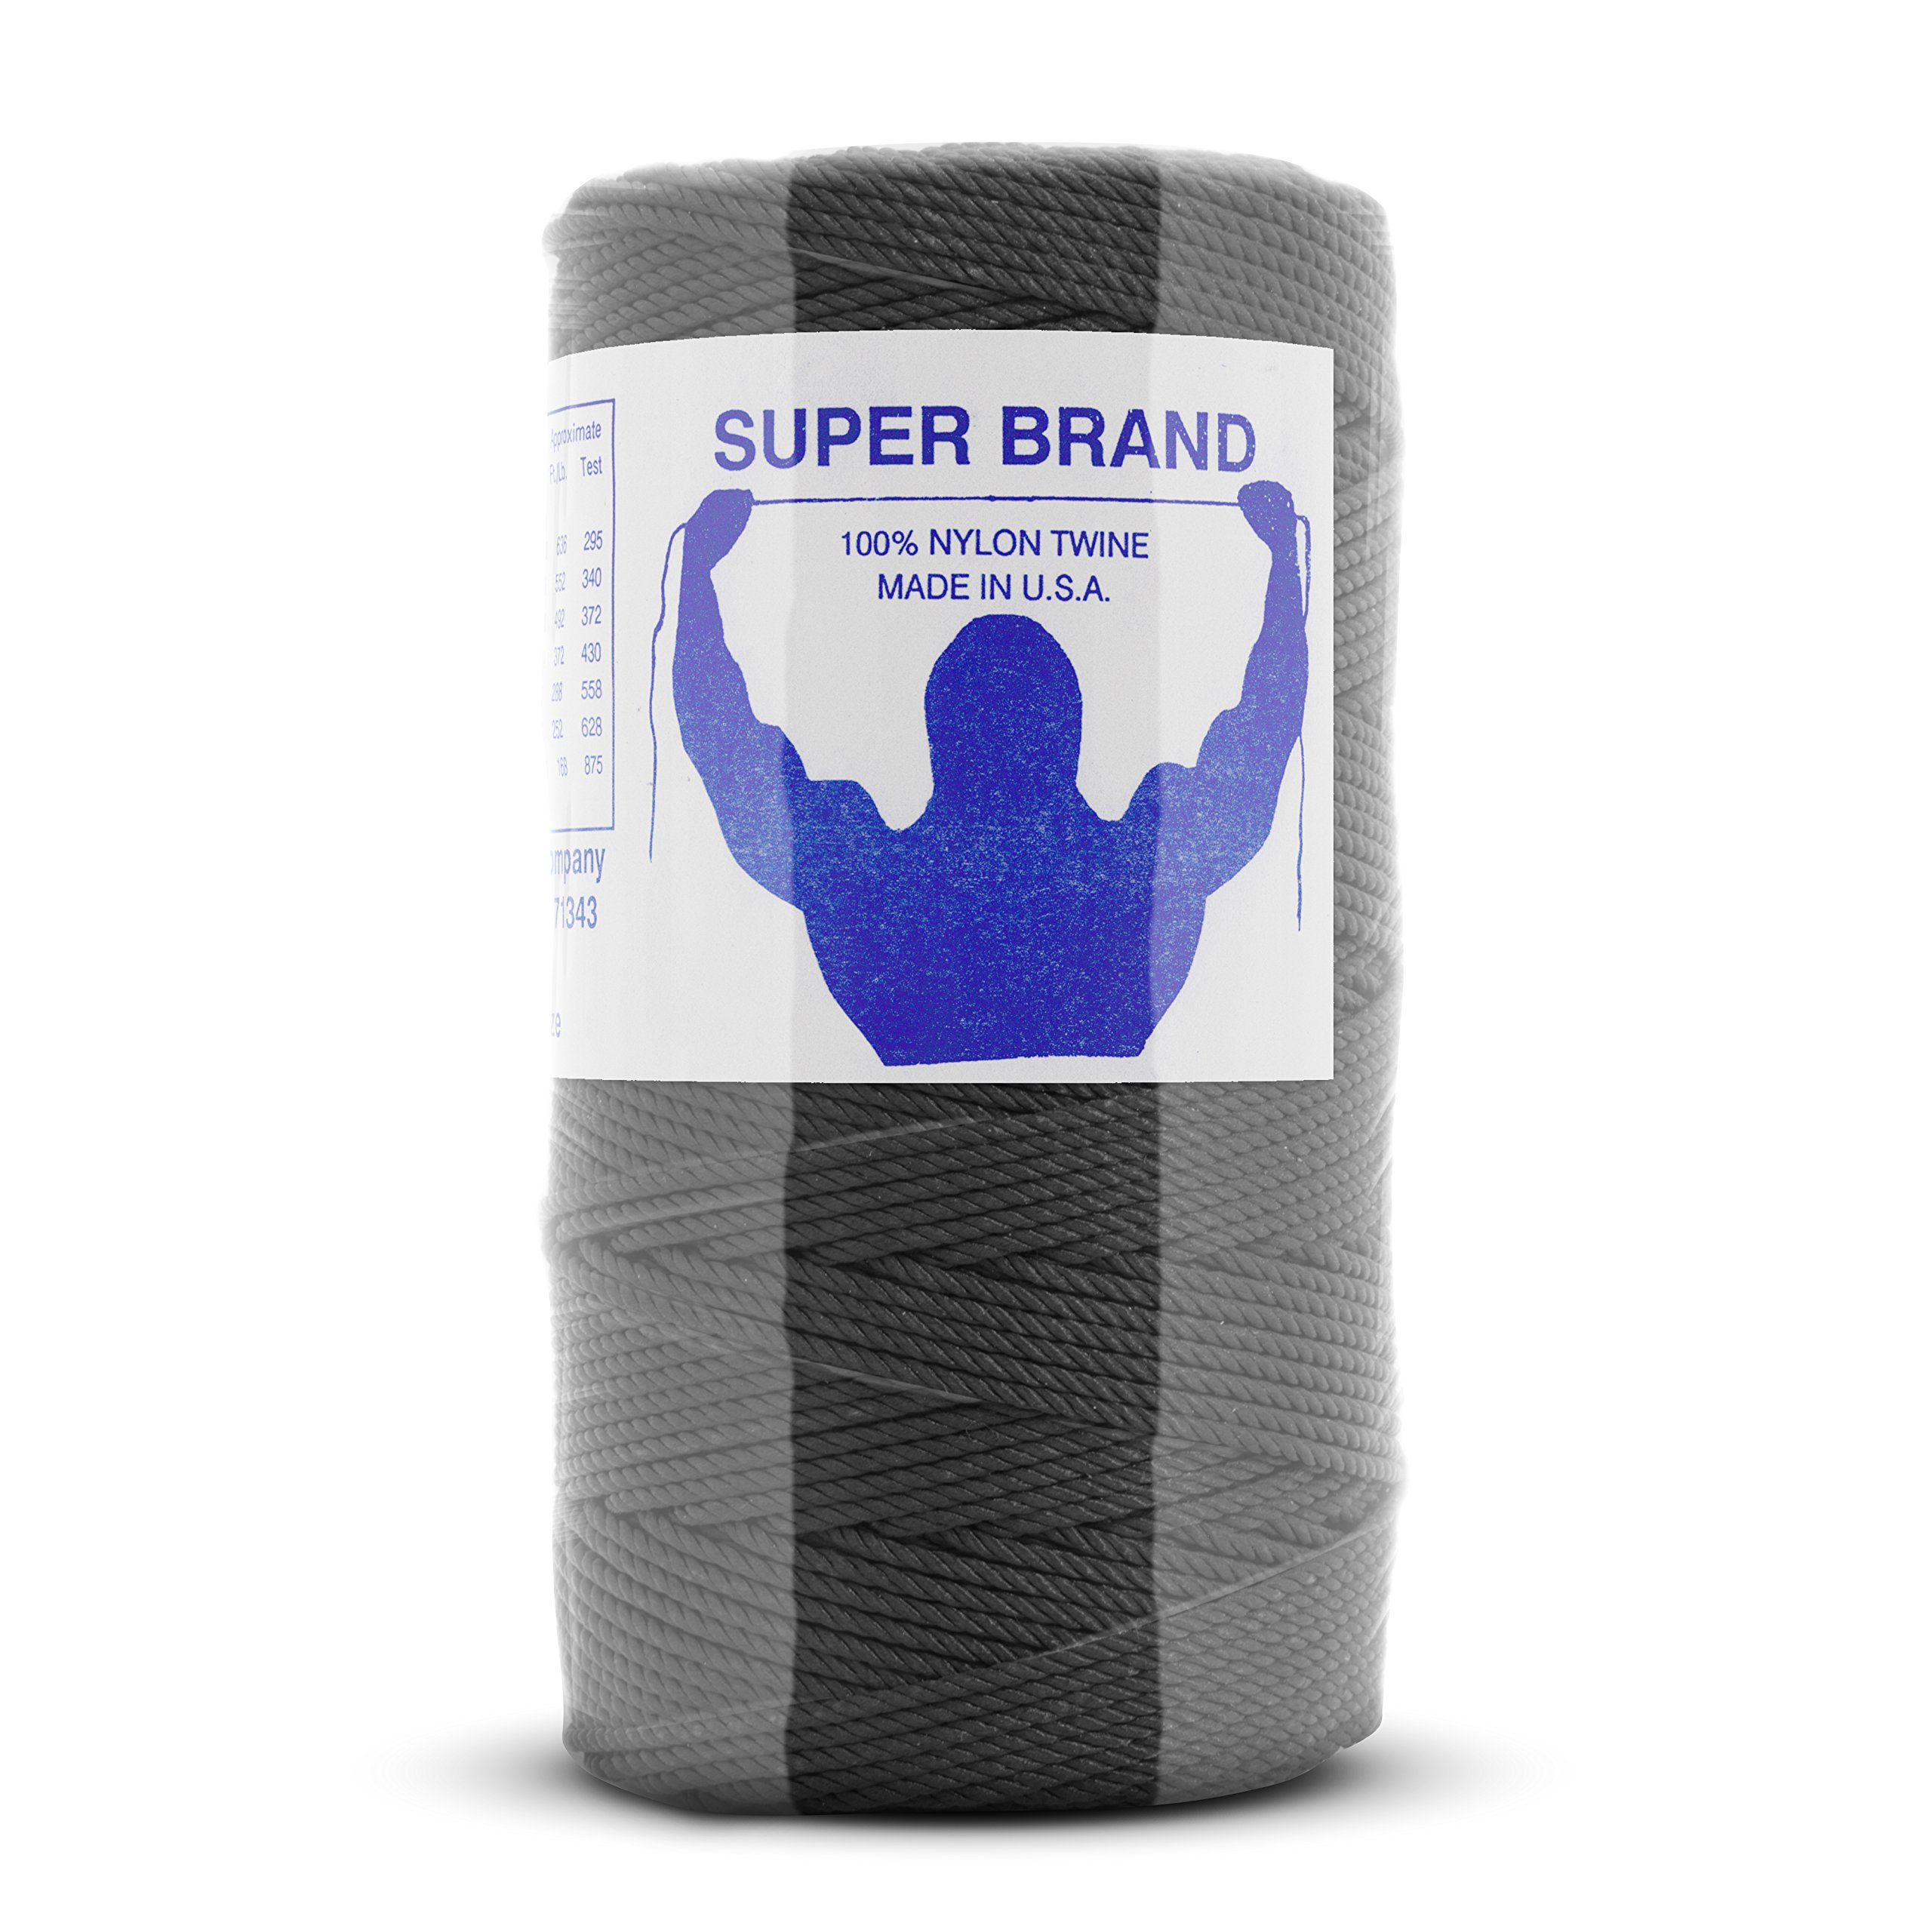 Tarred (Black) Nylon Twine, Twisted. Size #36, 1/4 lb 3-Pack by Super Brand